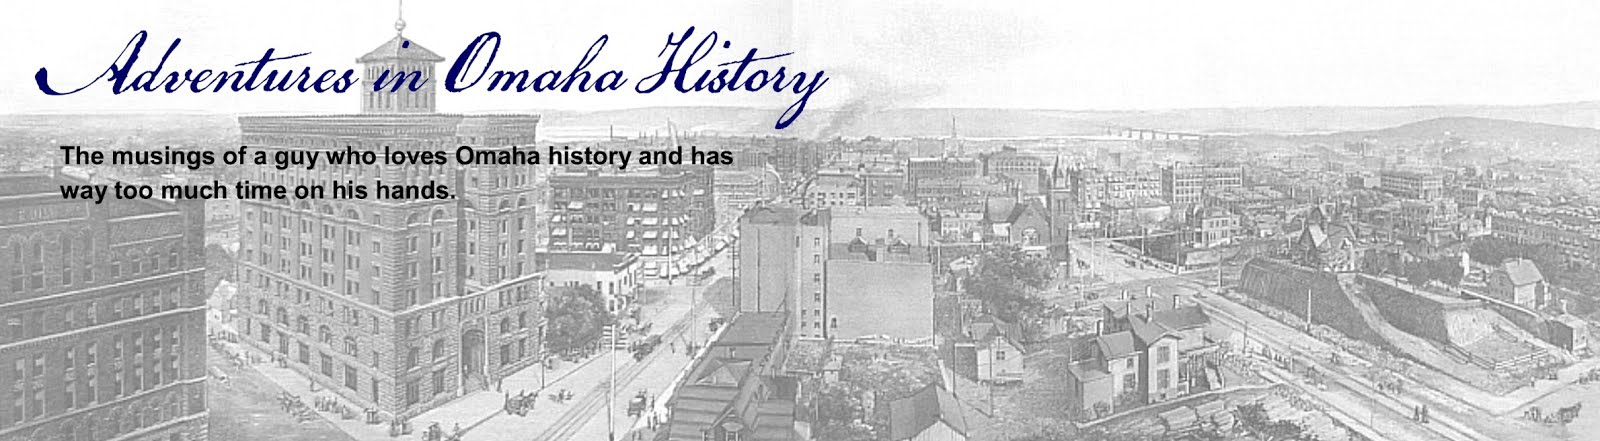 Adventures in Omaha History